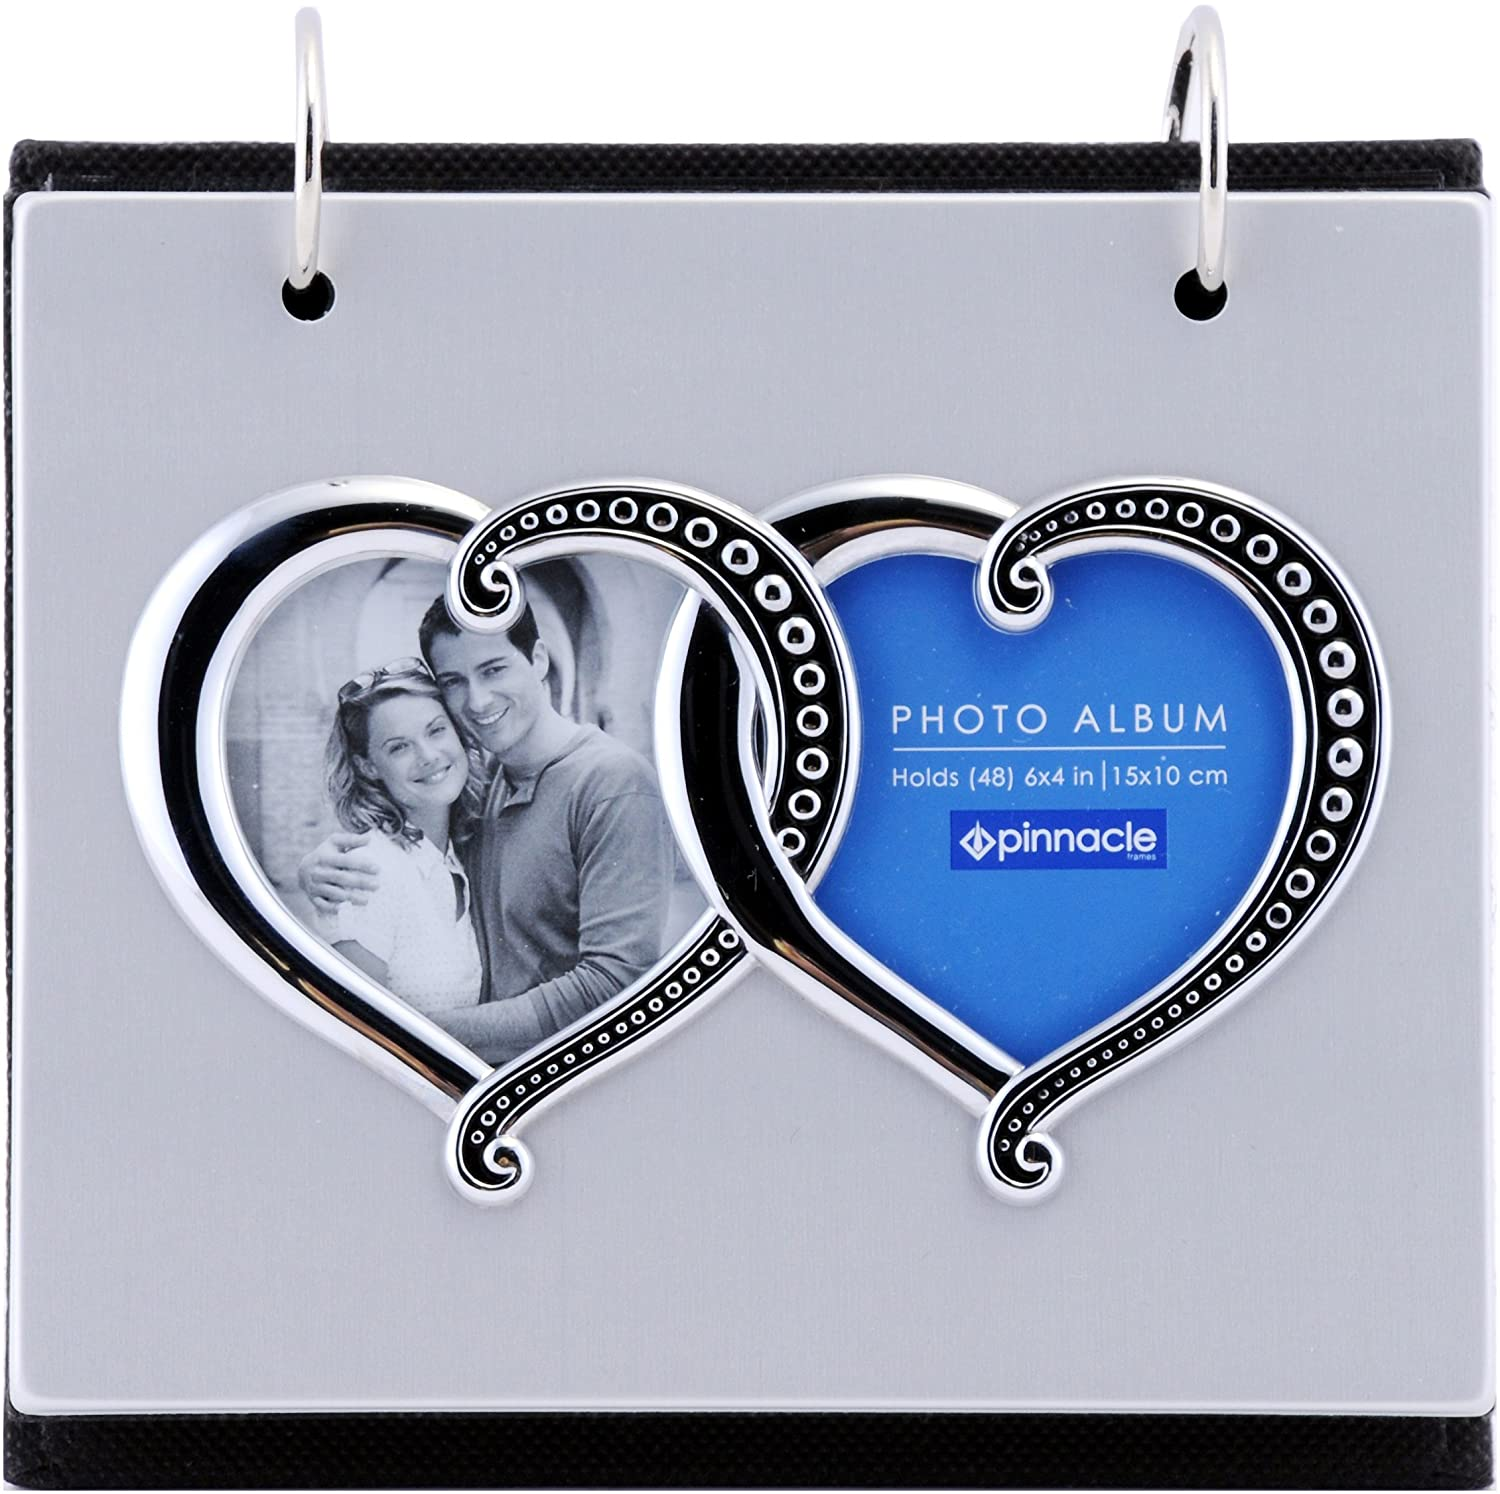 Pinnacle Frames and Accents Silver Metal Double Heart Flip 50-Pocket Photo Album NBG Home 06FF891